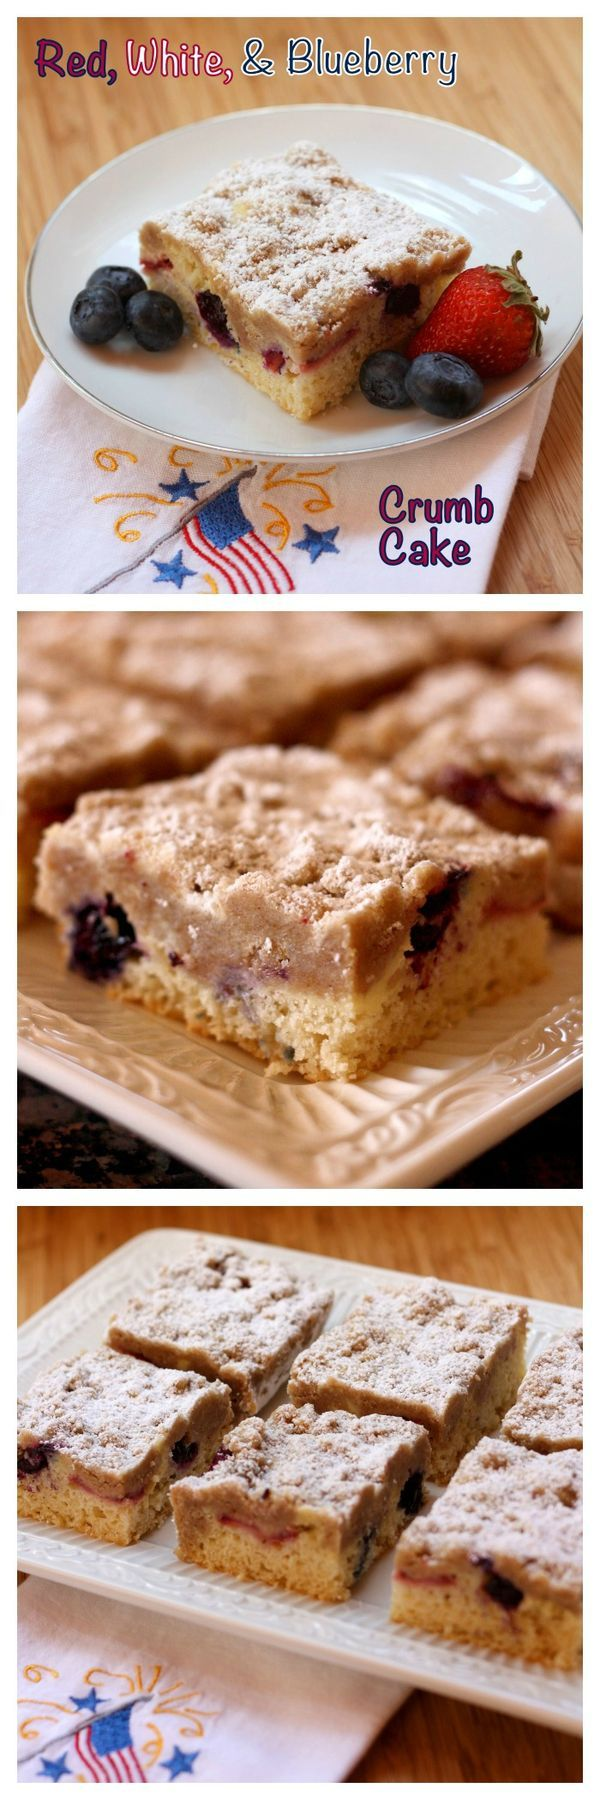 Red, White and Blueberry Crumb Cake - New York-style coffee cake filled with a berry and cheesecake filling. It's a fabulous addition to any breakfast or brunch brunch menu! | cupcakesandkalechips.com